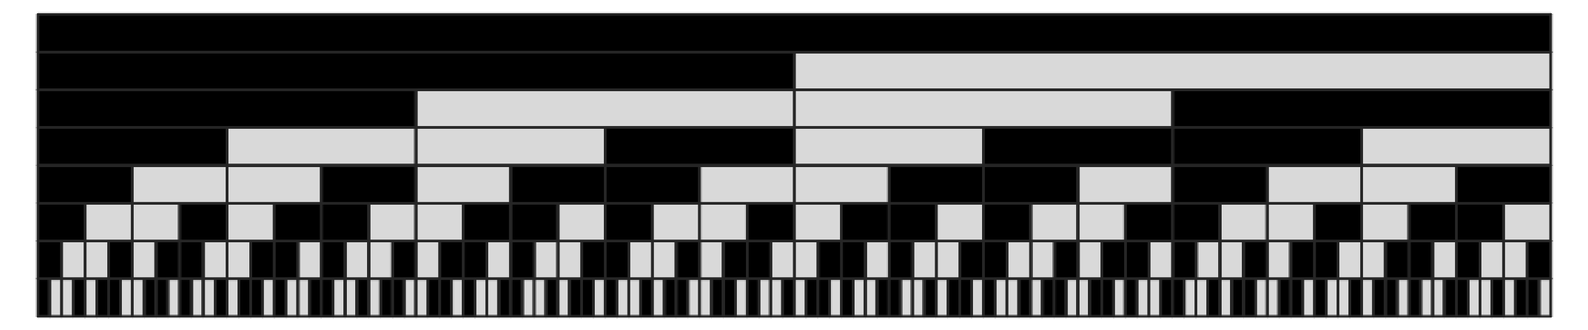 Nested patterns generated by simple branching processes